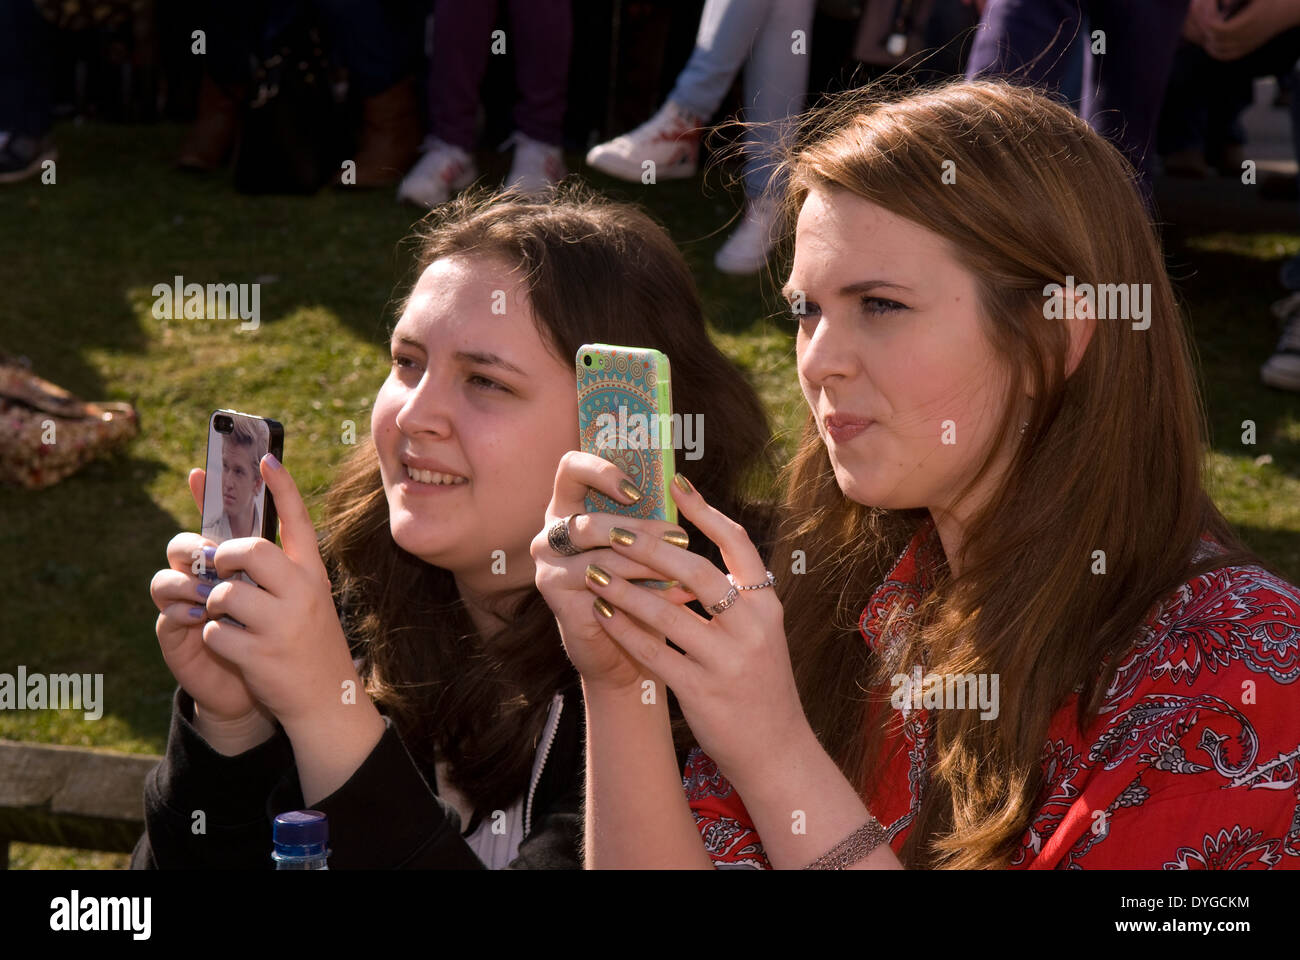 Teenagers at a STEM (Science, Technology, Engineering, Mathematics) Festival taking photos on their mobile phones - Stock Image